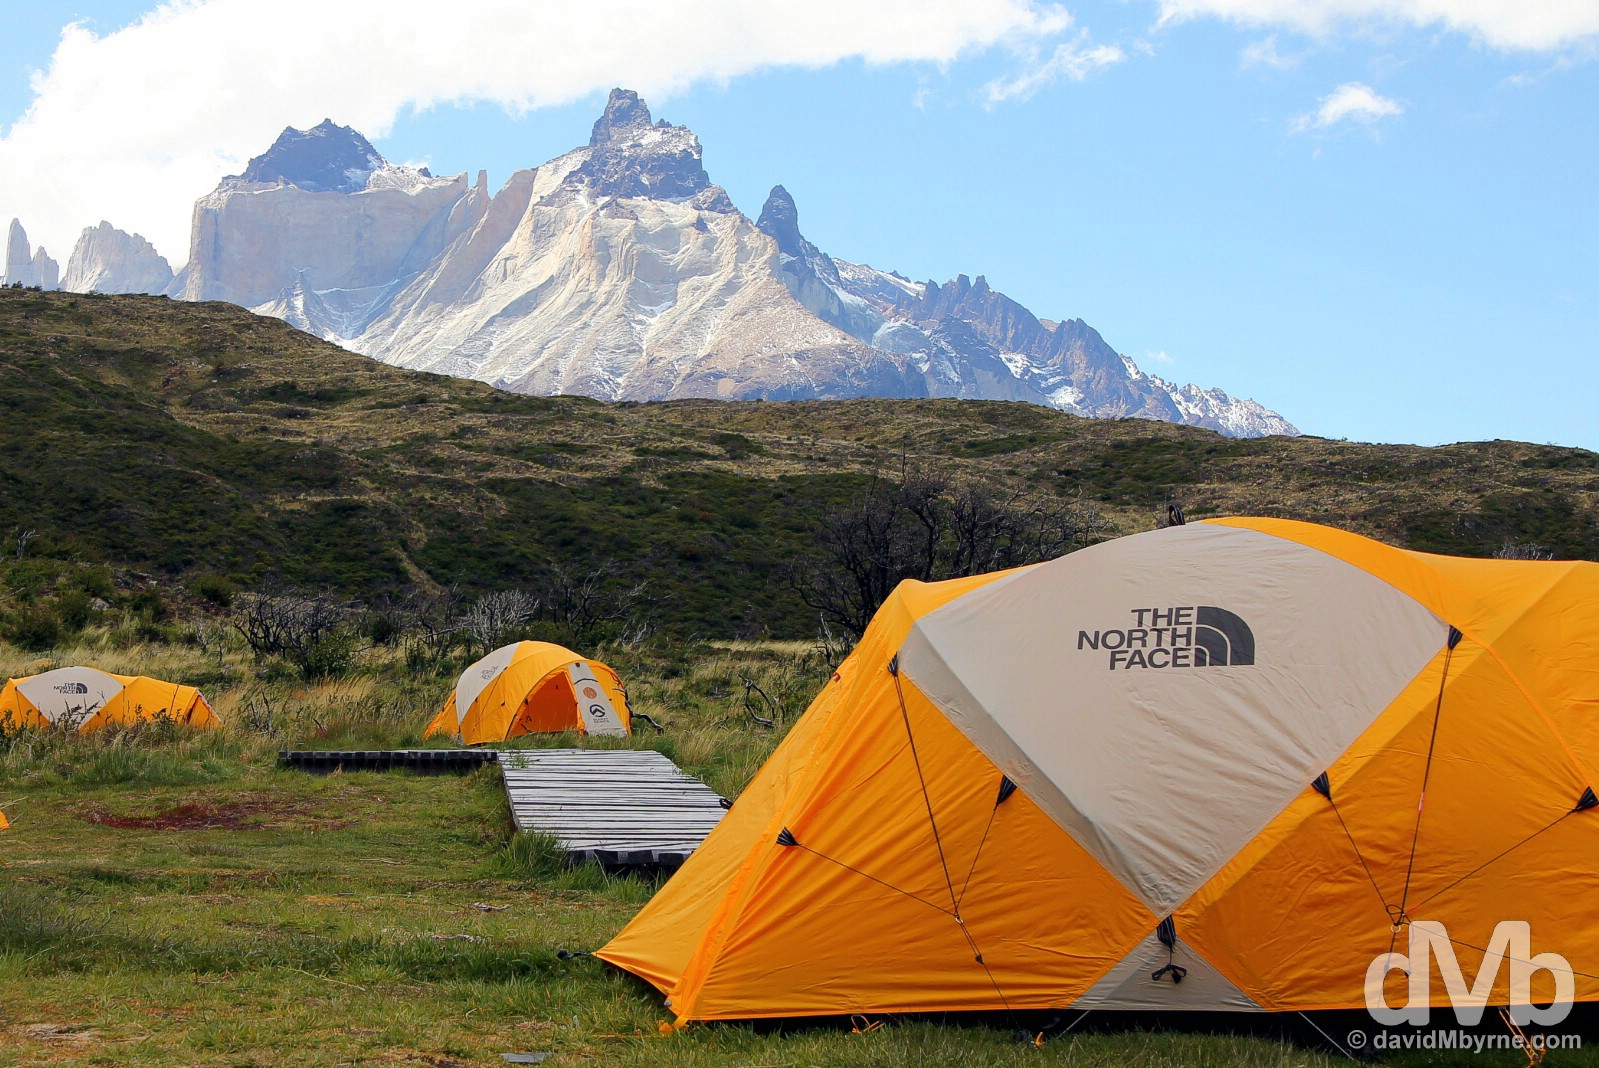 Campamento Paine Grande in Torres del Paine National Park, Chile. November 21, 2105.